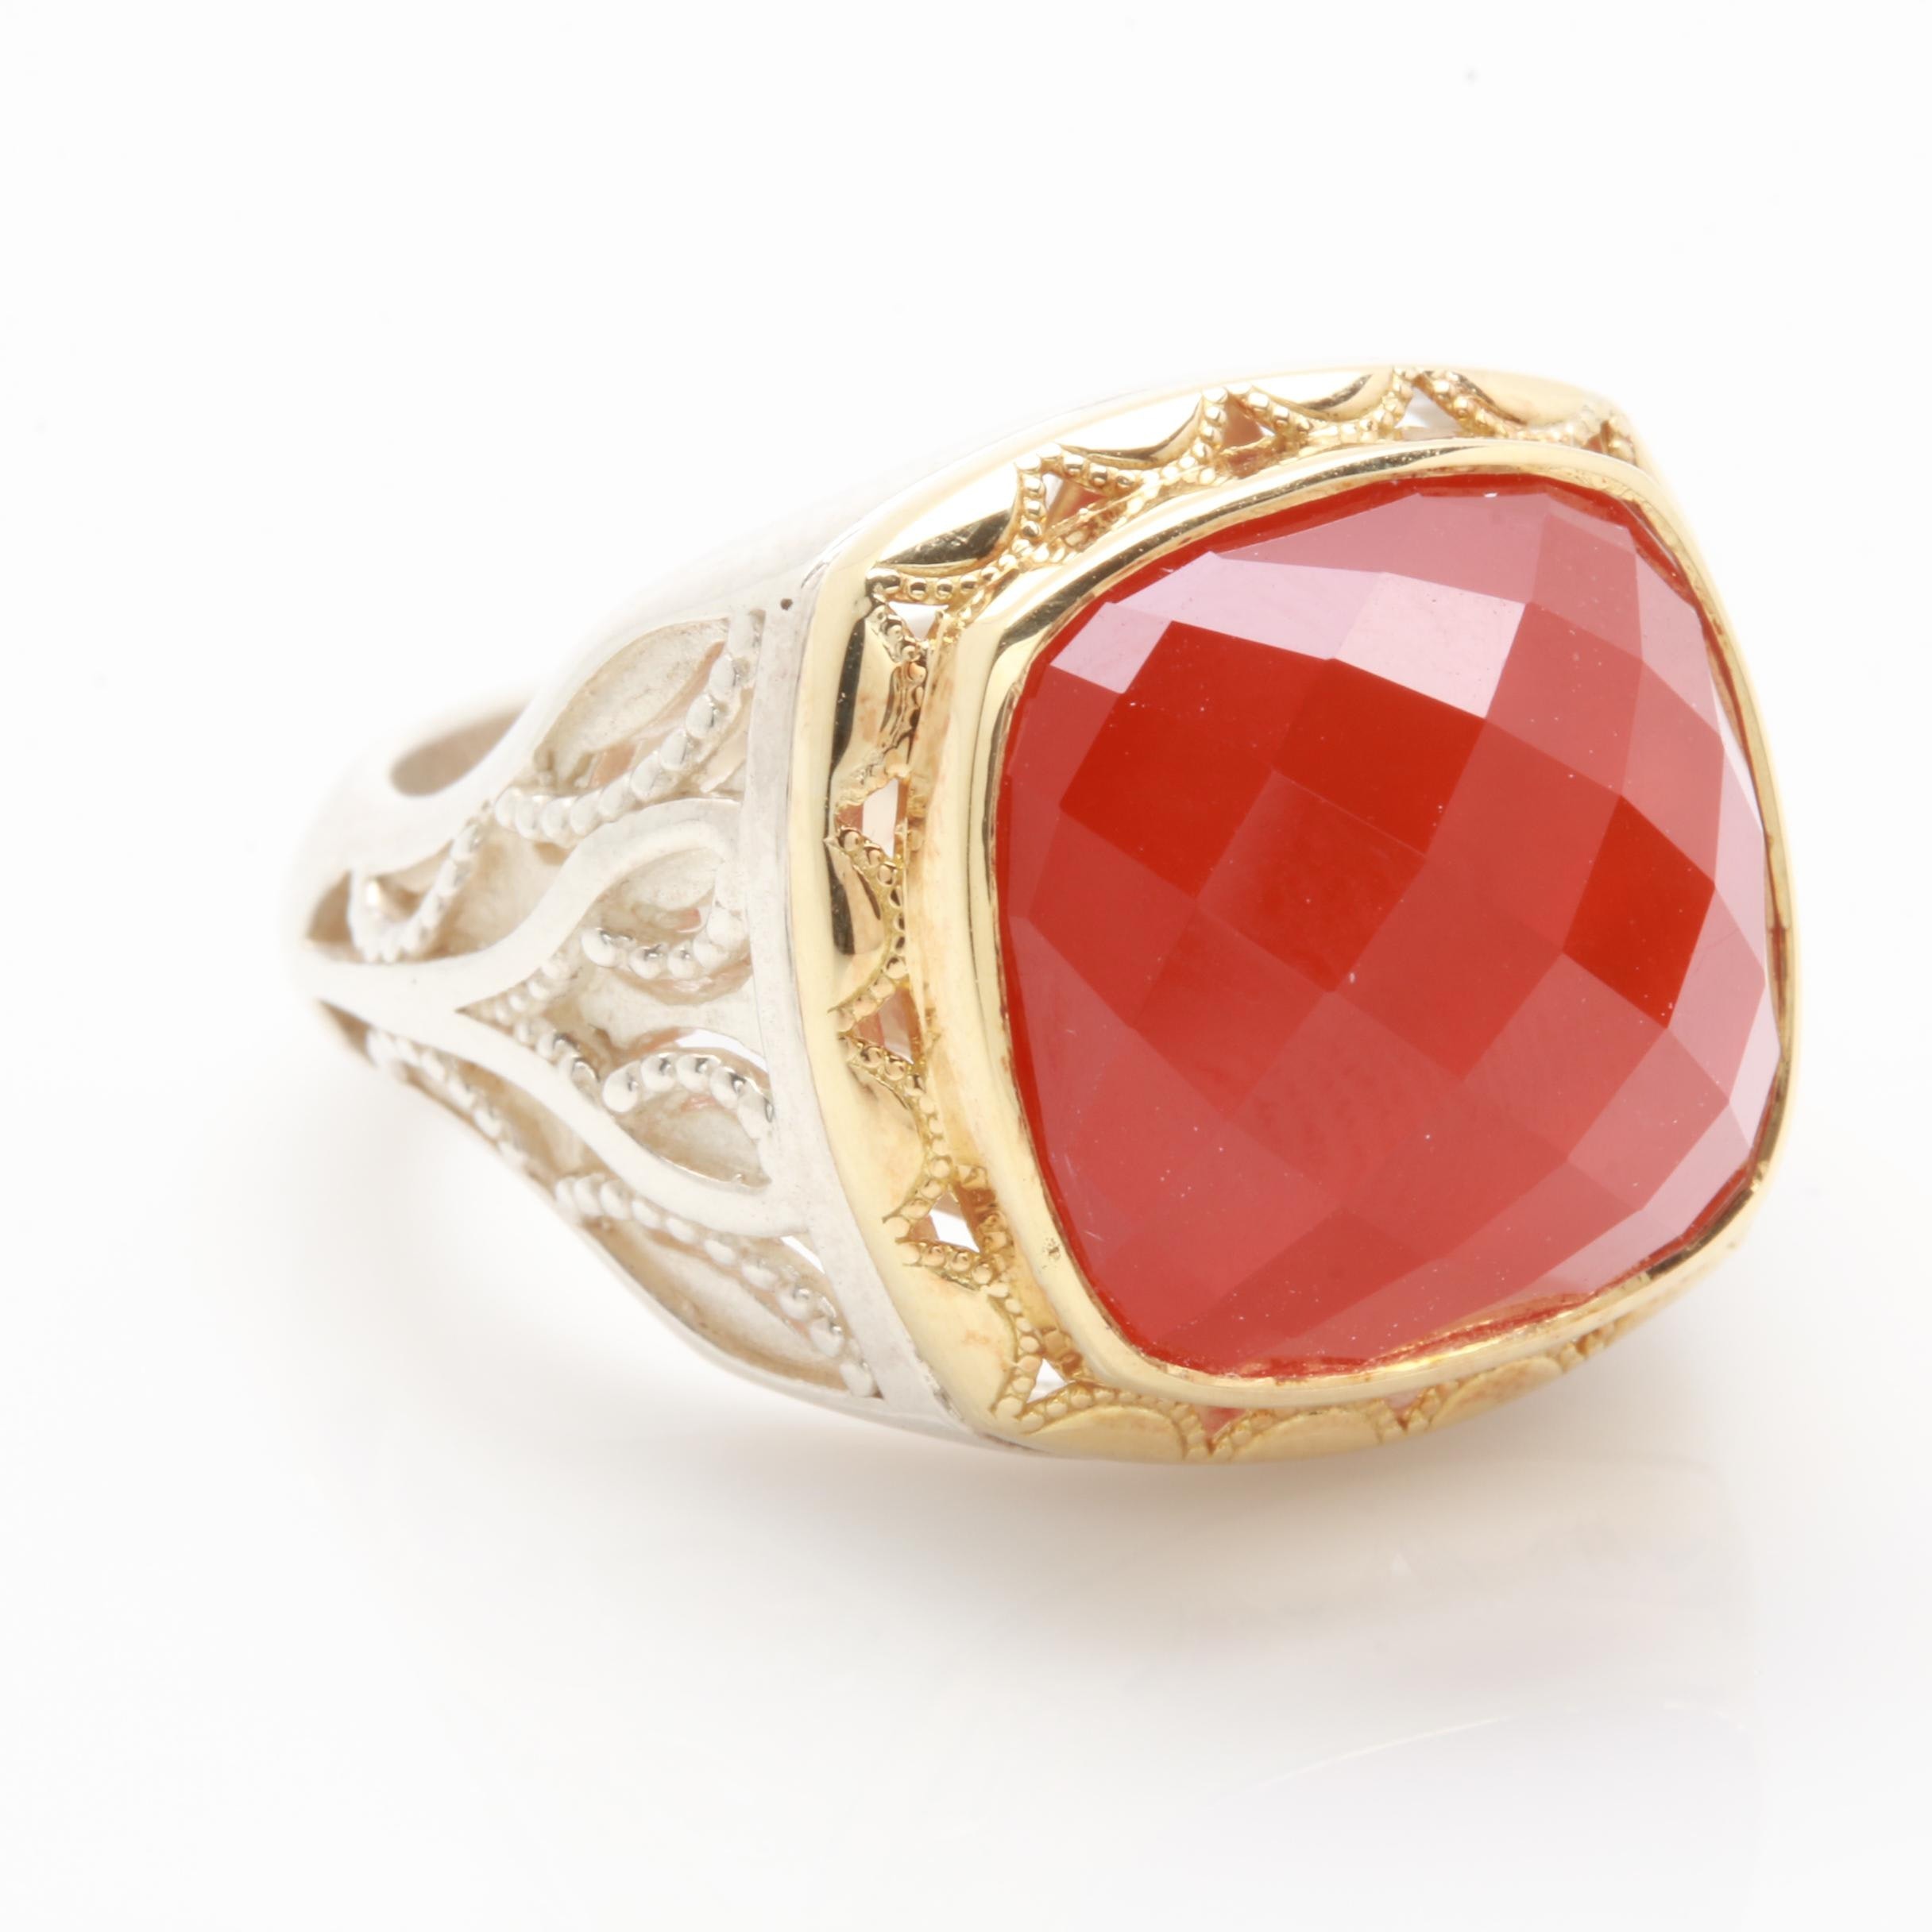 Tacori Sterling Silver Quartz Carnelian Doublet Ring with 18K Accents